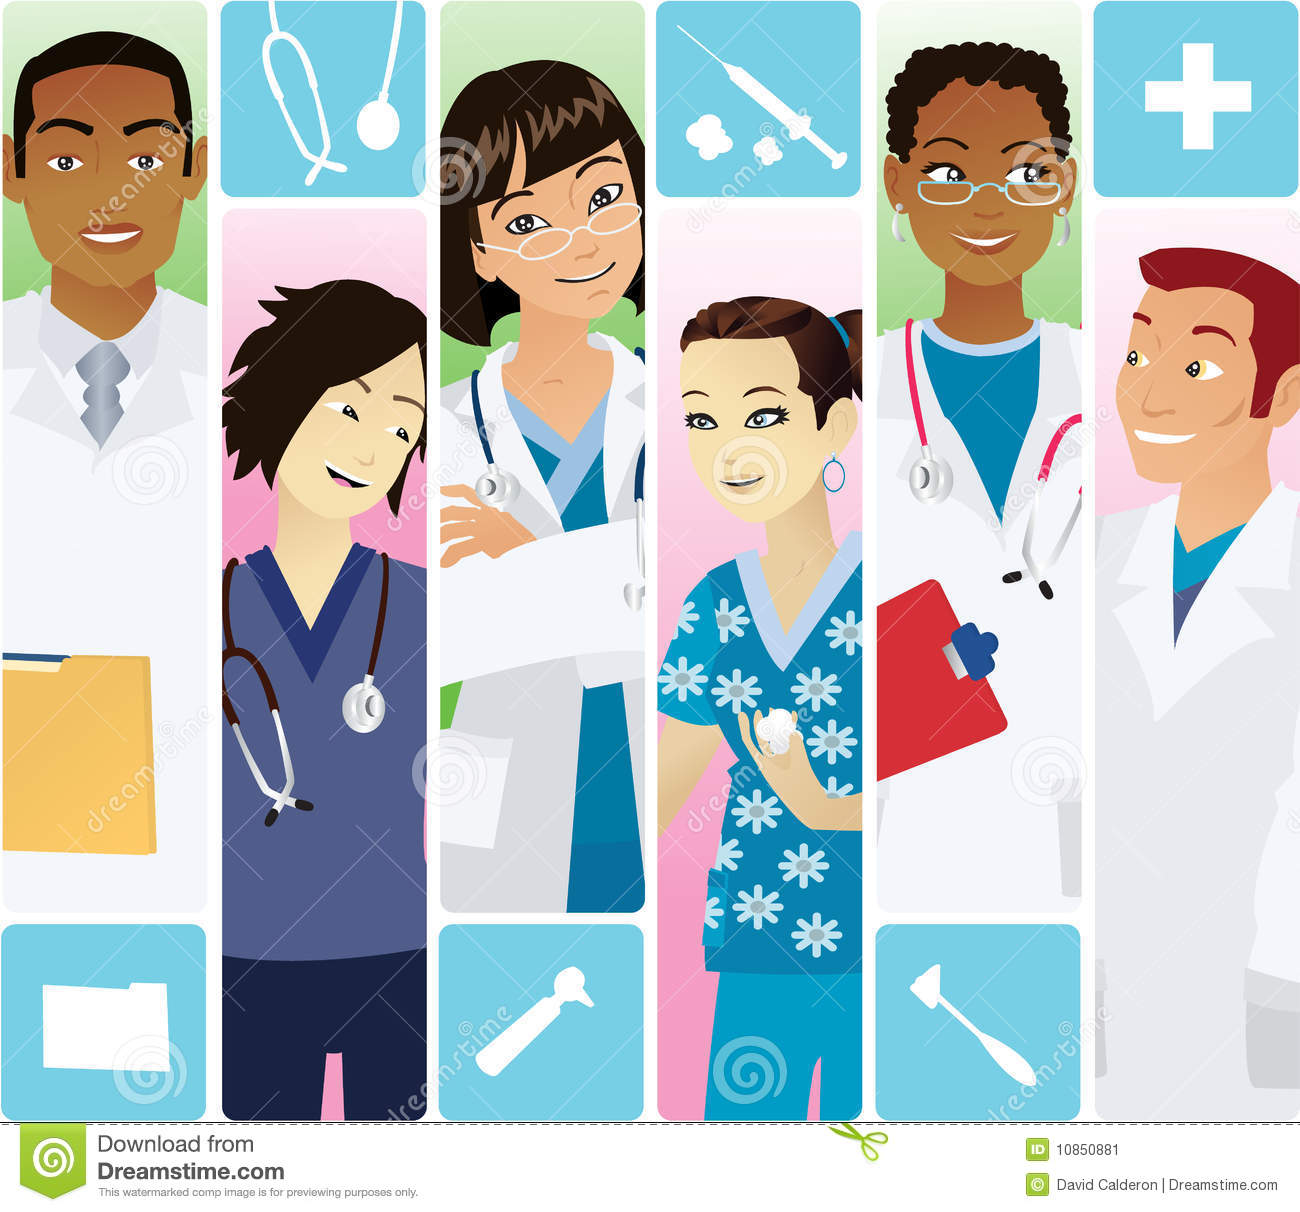 Doctors and nurses from different ethnicities.